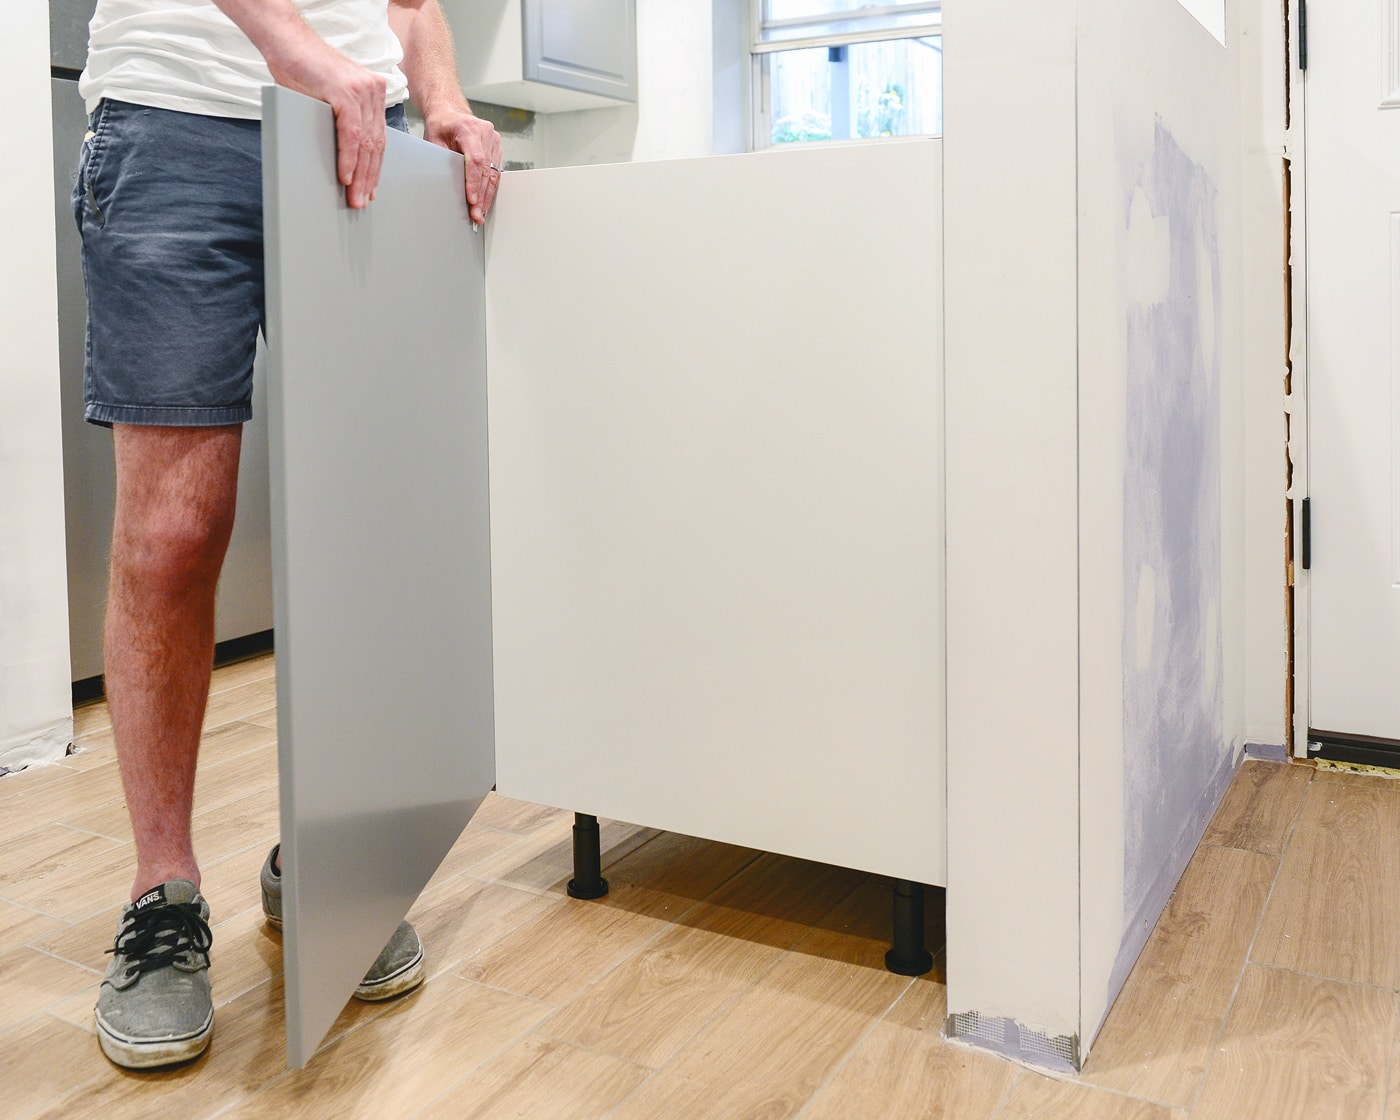 Perfecting the imperfect in our ikea kitchen fillers - Ikea corner cabinet door installation ...